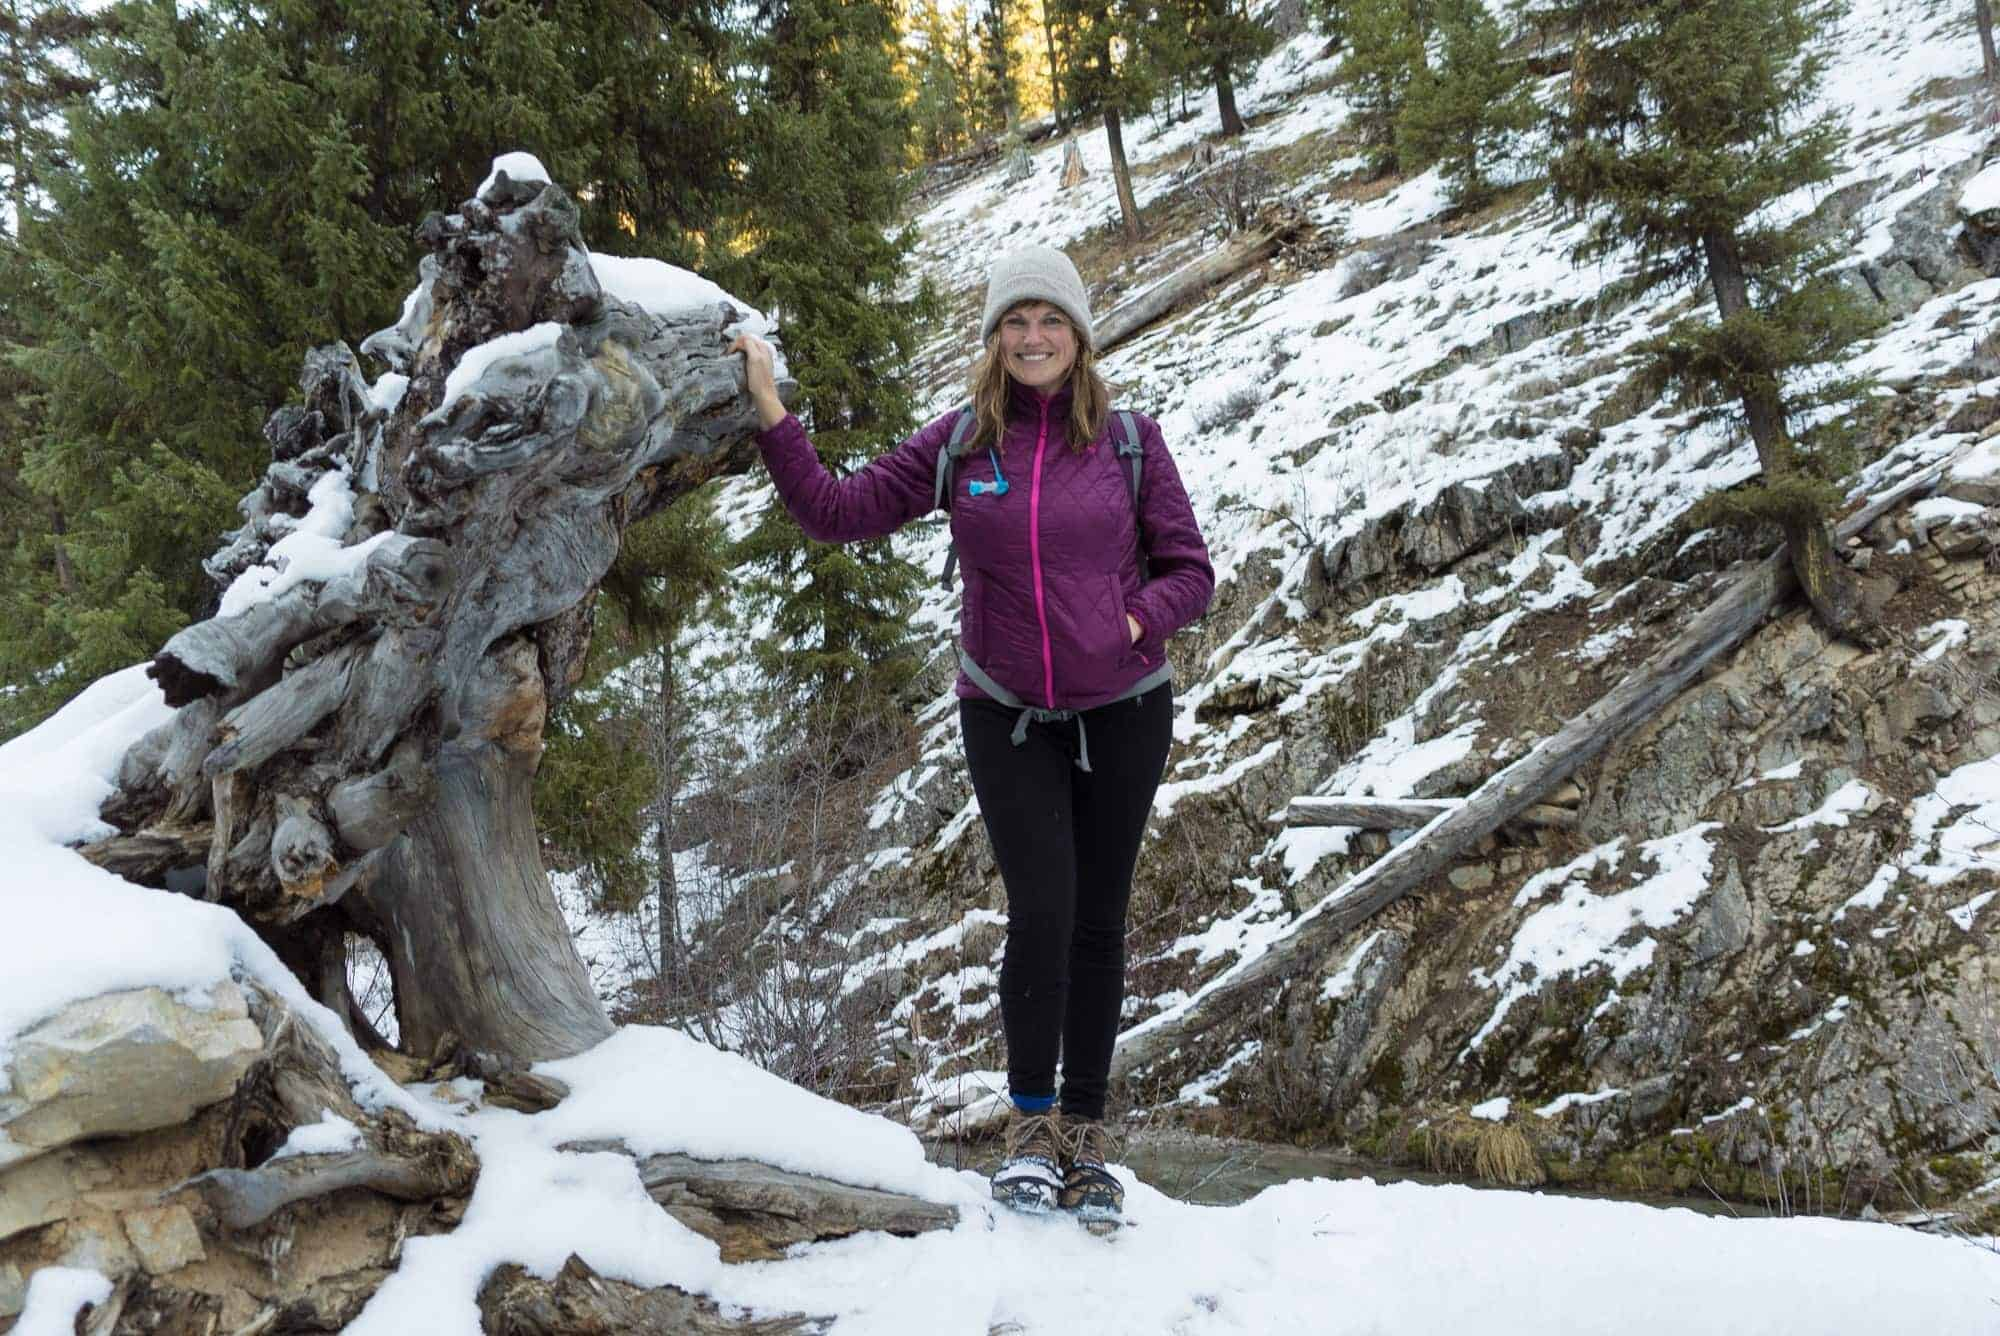 Interested in winter hiking? Learn what clothes to wear for cold weather hiking and how to layer appropriately for snow and chilly temps.